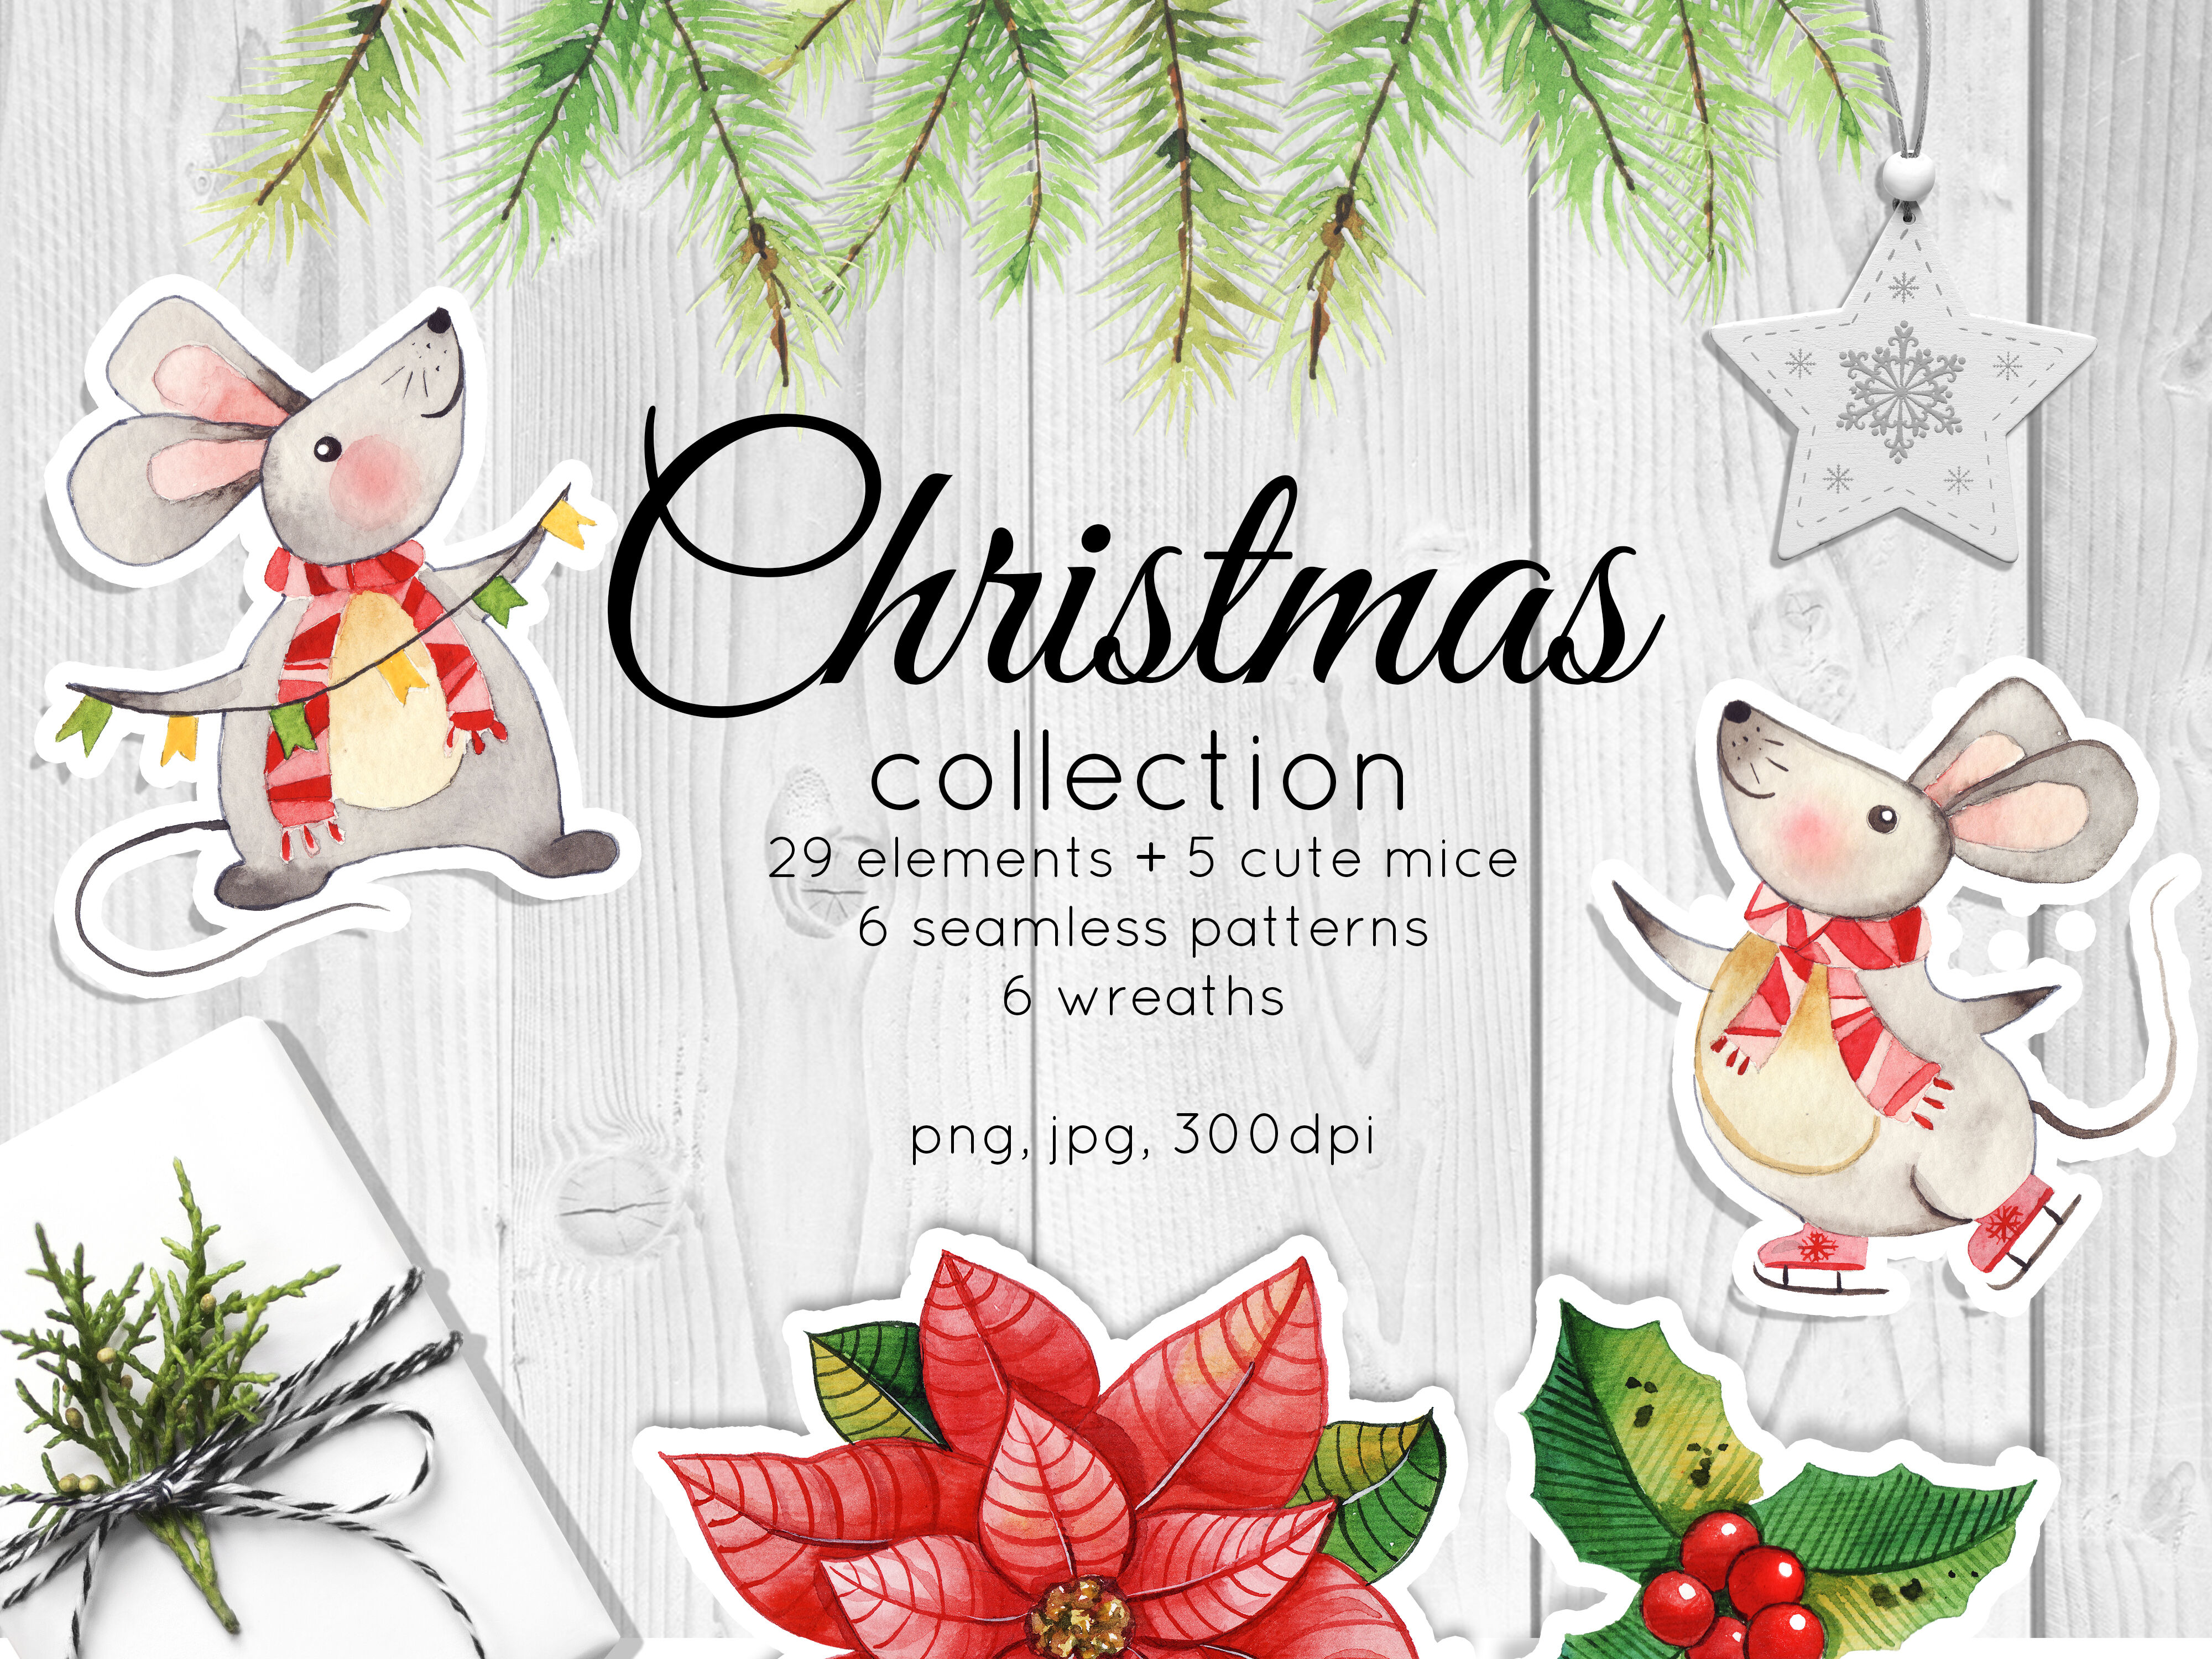 Christmas Collection Watercolor Decor And Cute Cartoon Mice By